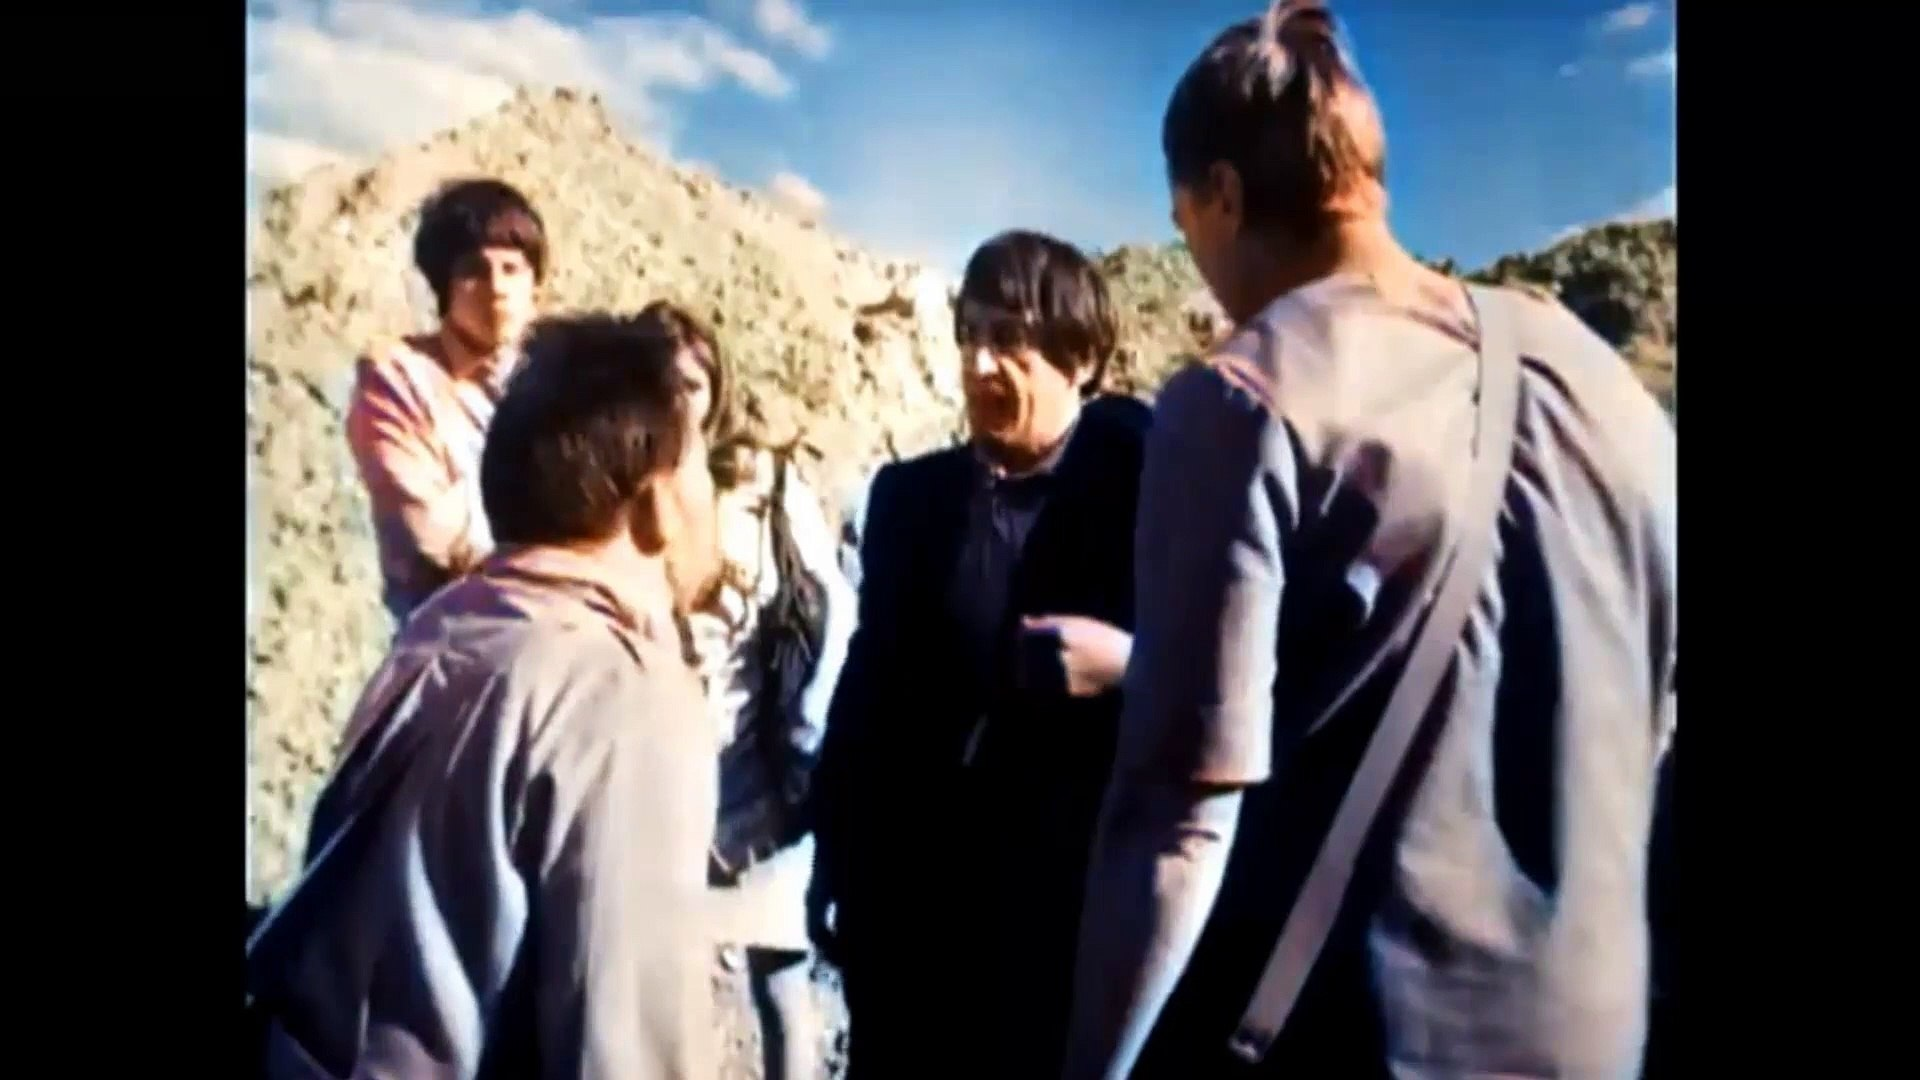 Doctor Who The Tomb Of The Cybermen Episode 1 In Color Reversed Imaging Video Dailymotion